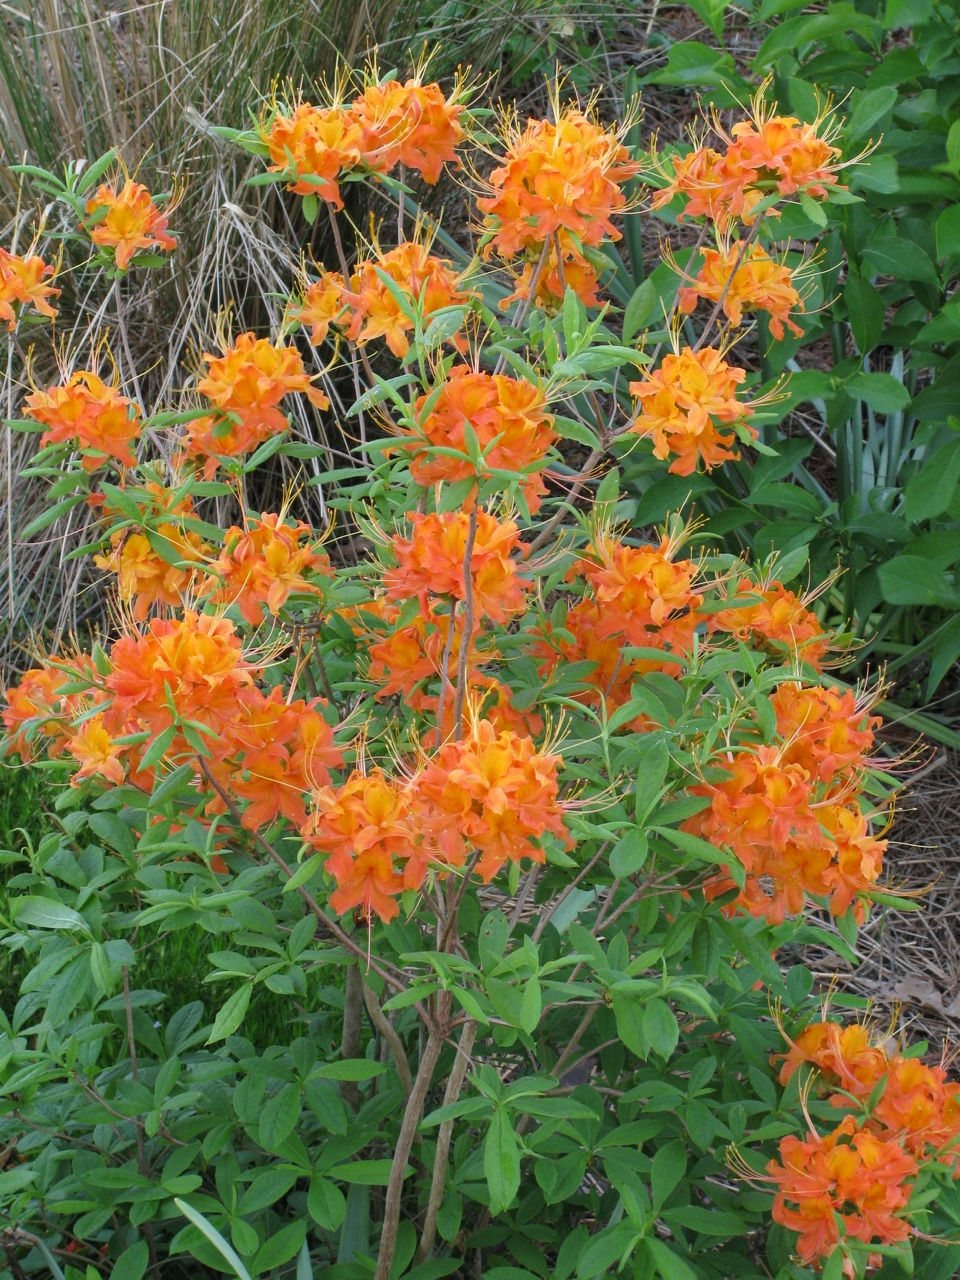 The Scientific Name is Rhododendron calendulaceum. You will likely hear them called Flame Azalea. This picture shows the Young shrub in full bloom in early May of Rhododendron calendulaceum